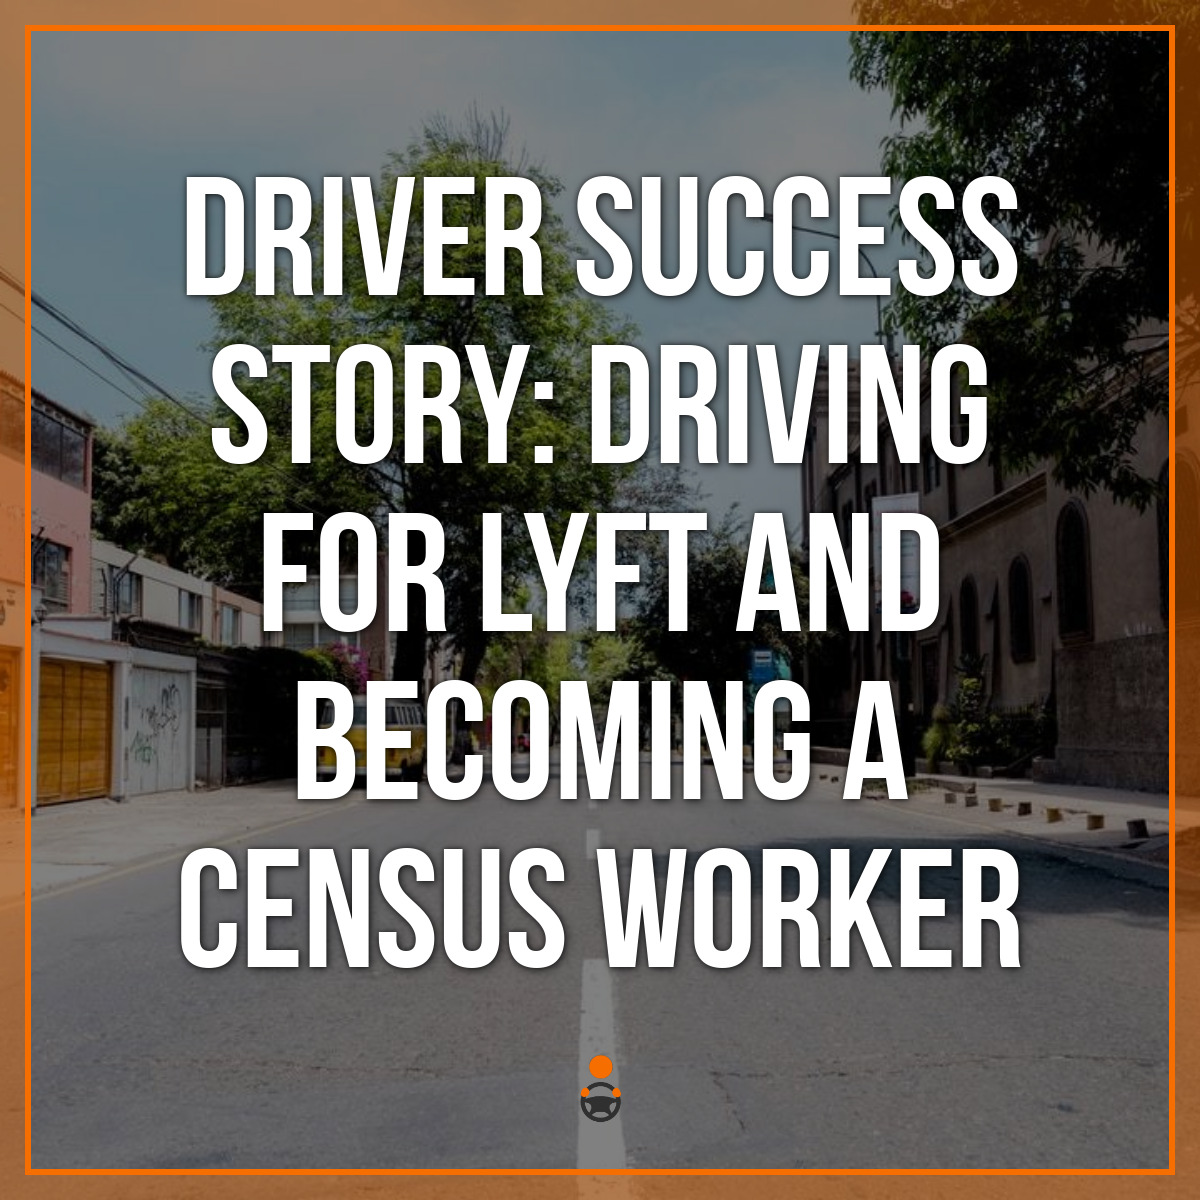 Driver Success Story: Driving For Lyft and Becoming a Census Worker